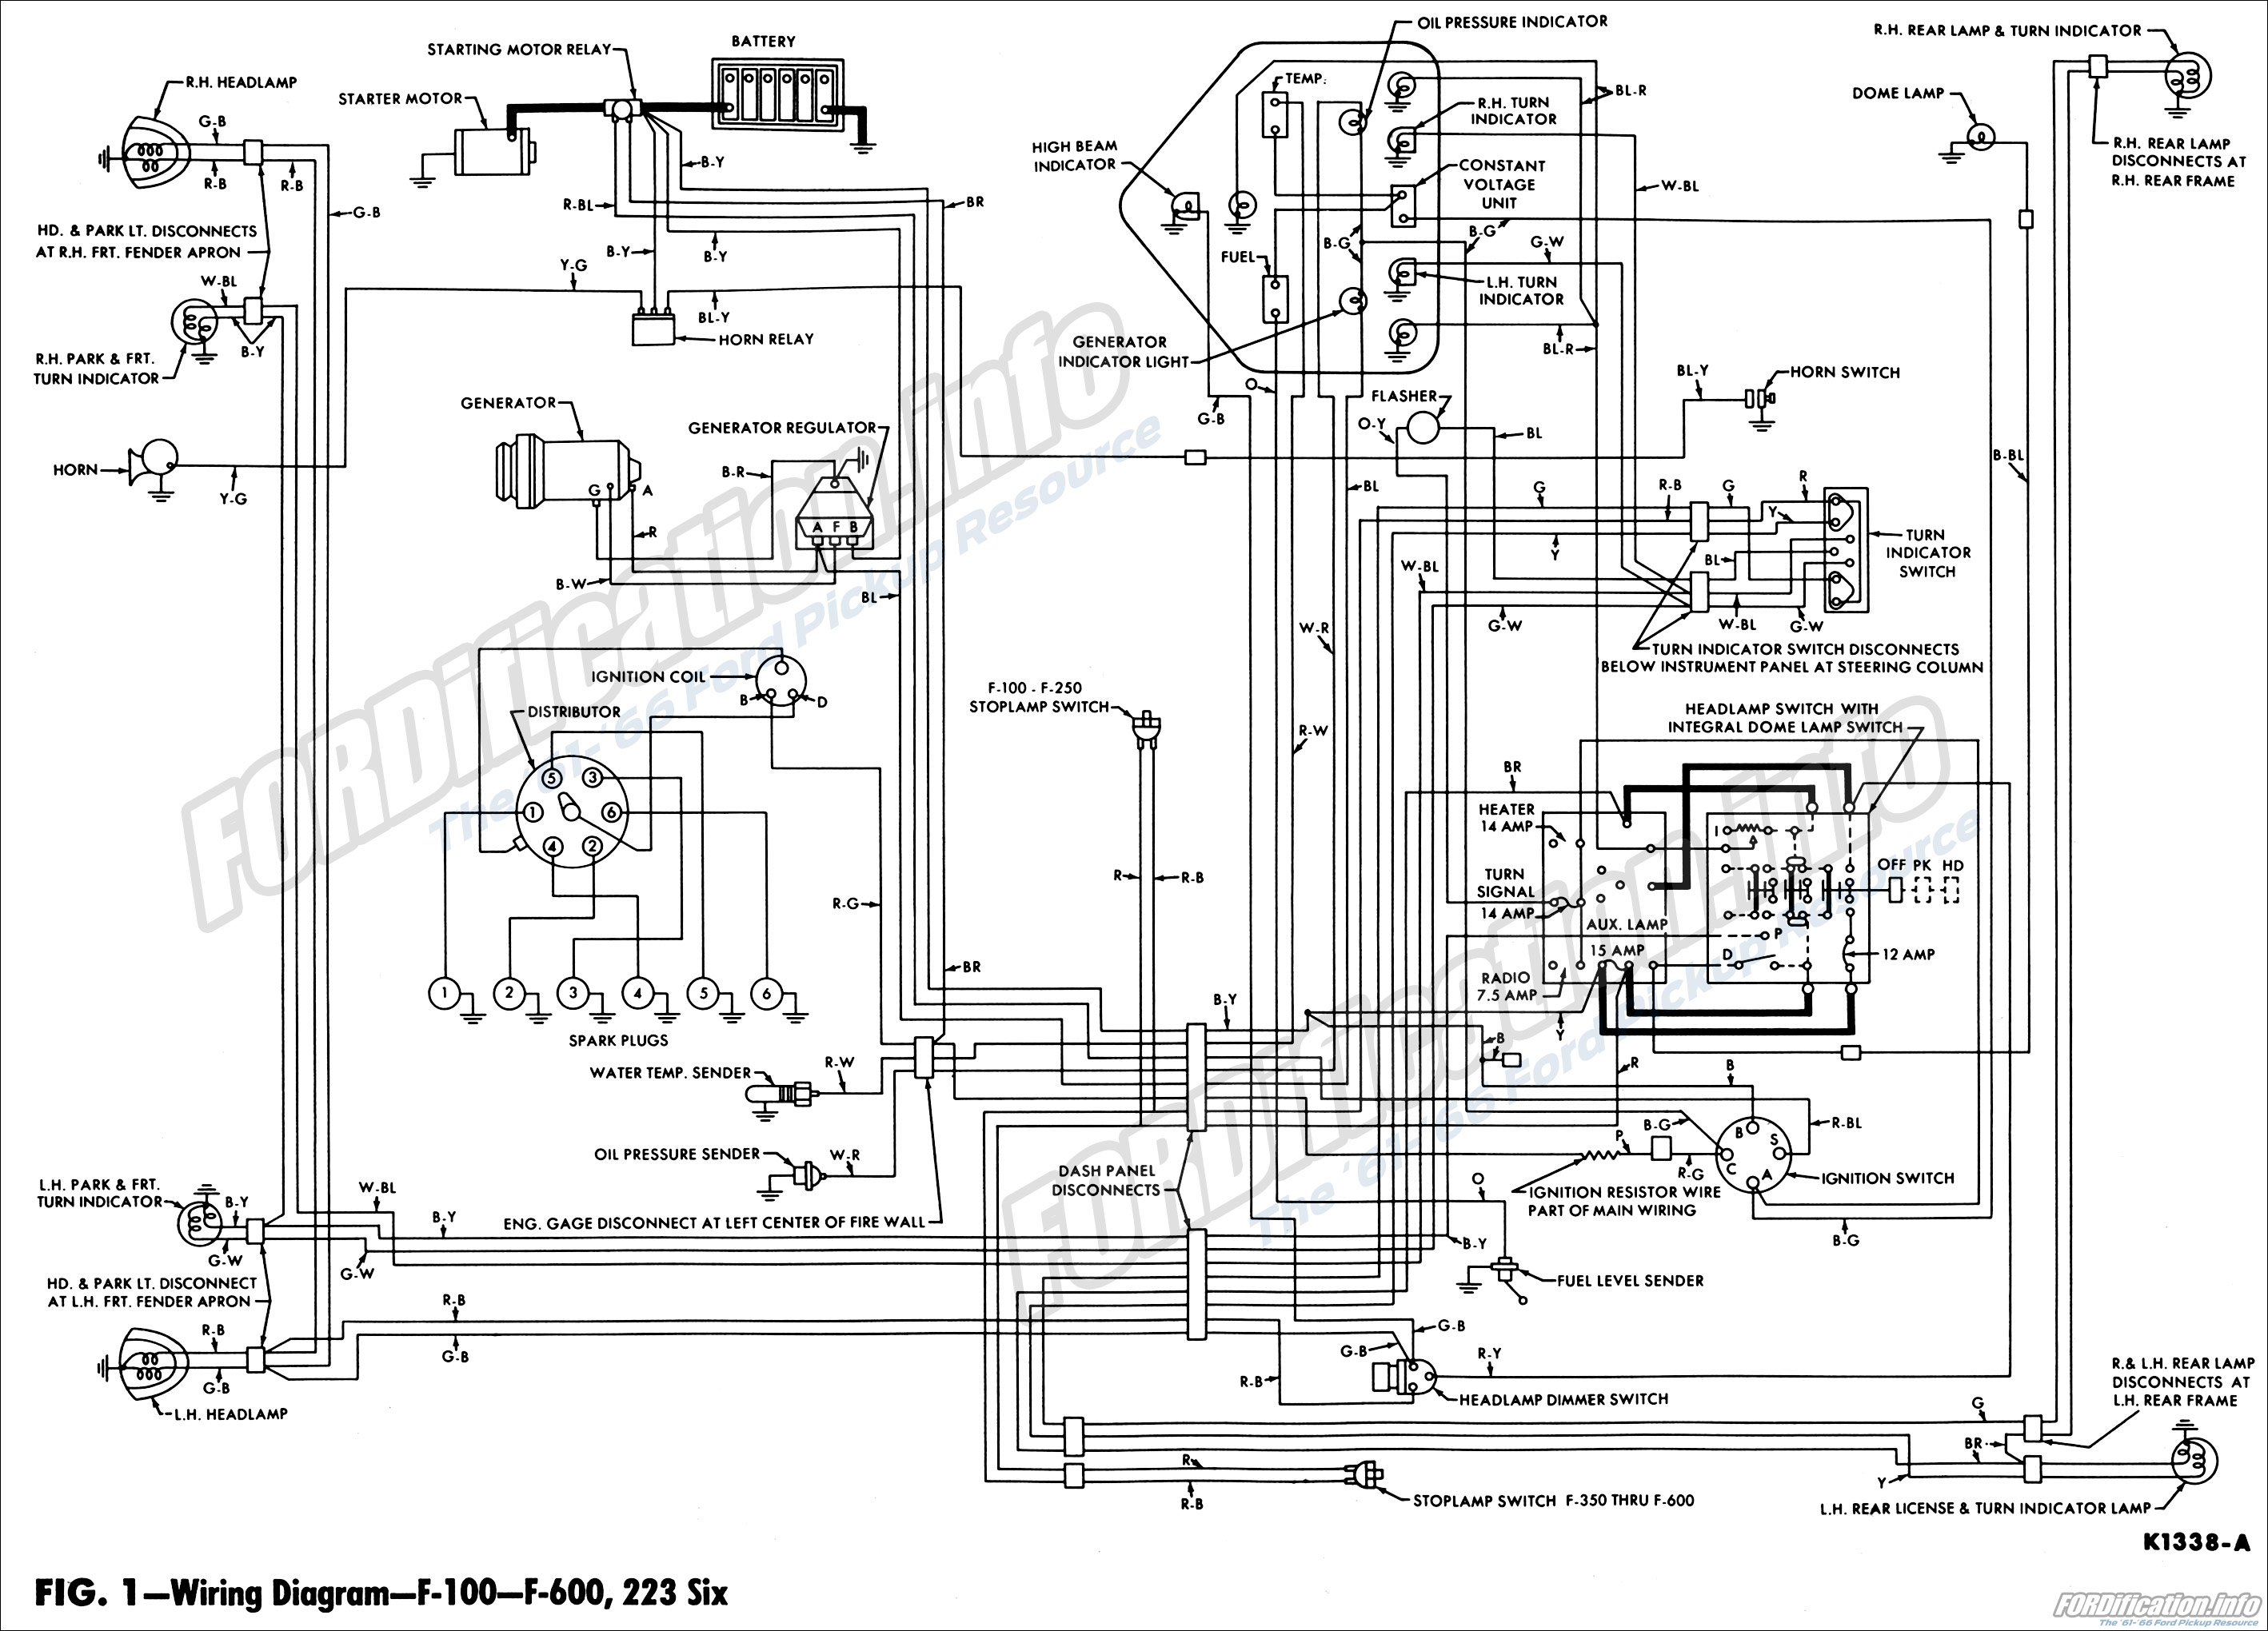 1962 wiring diagram - f100-f600, 223 six engines